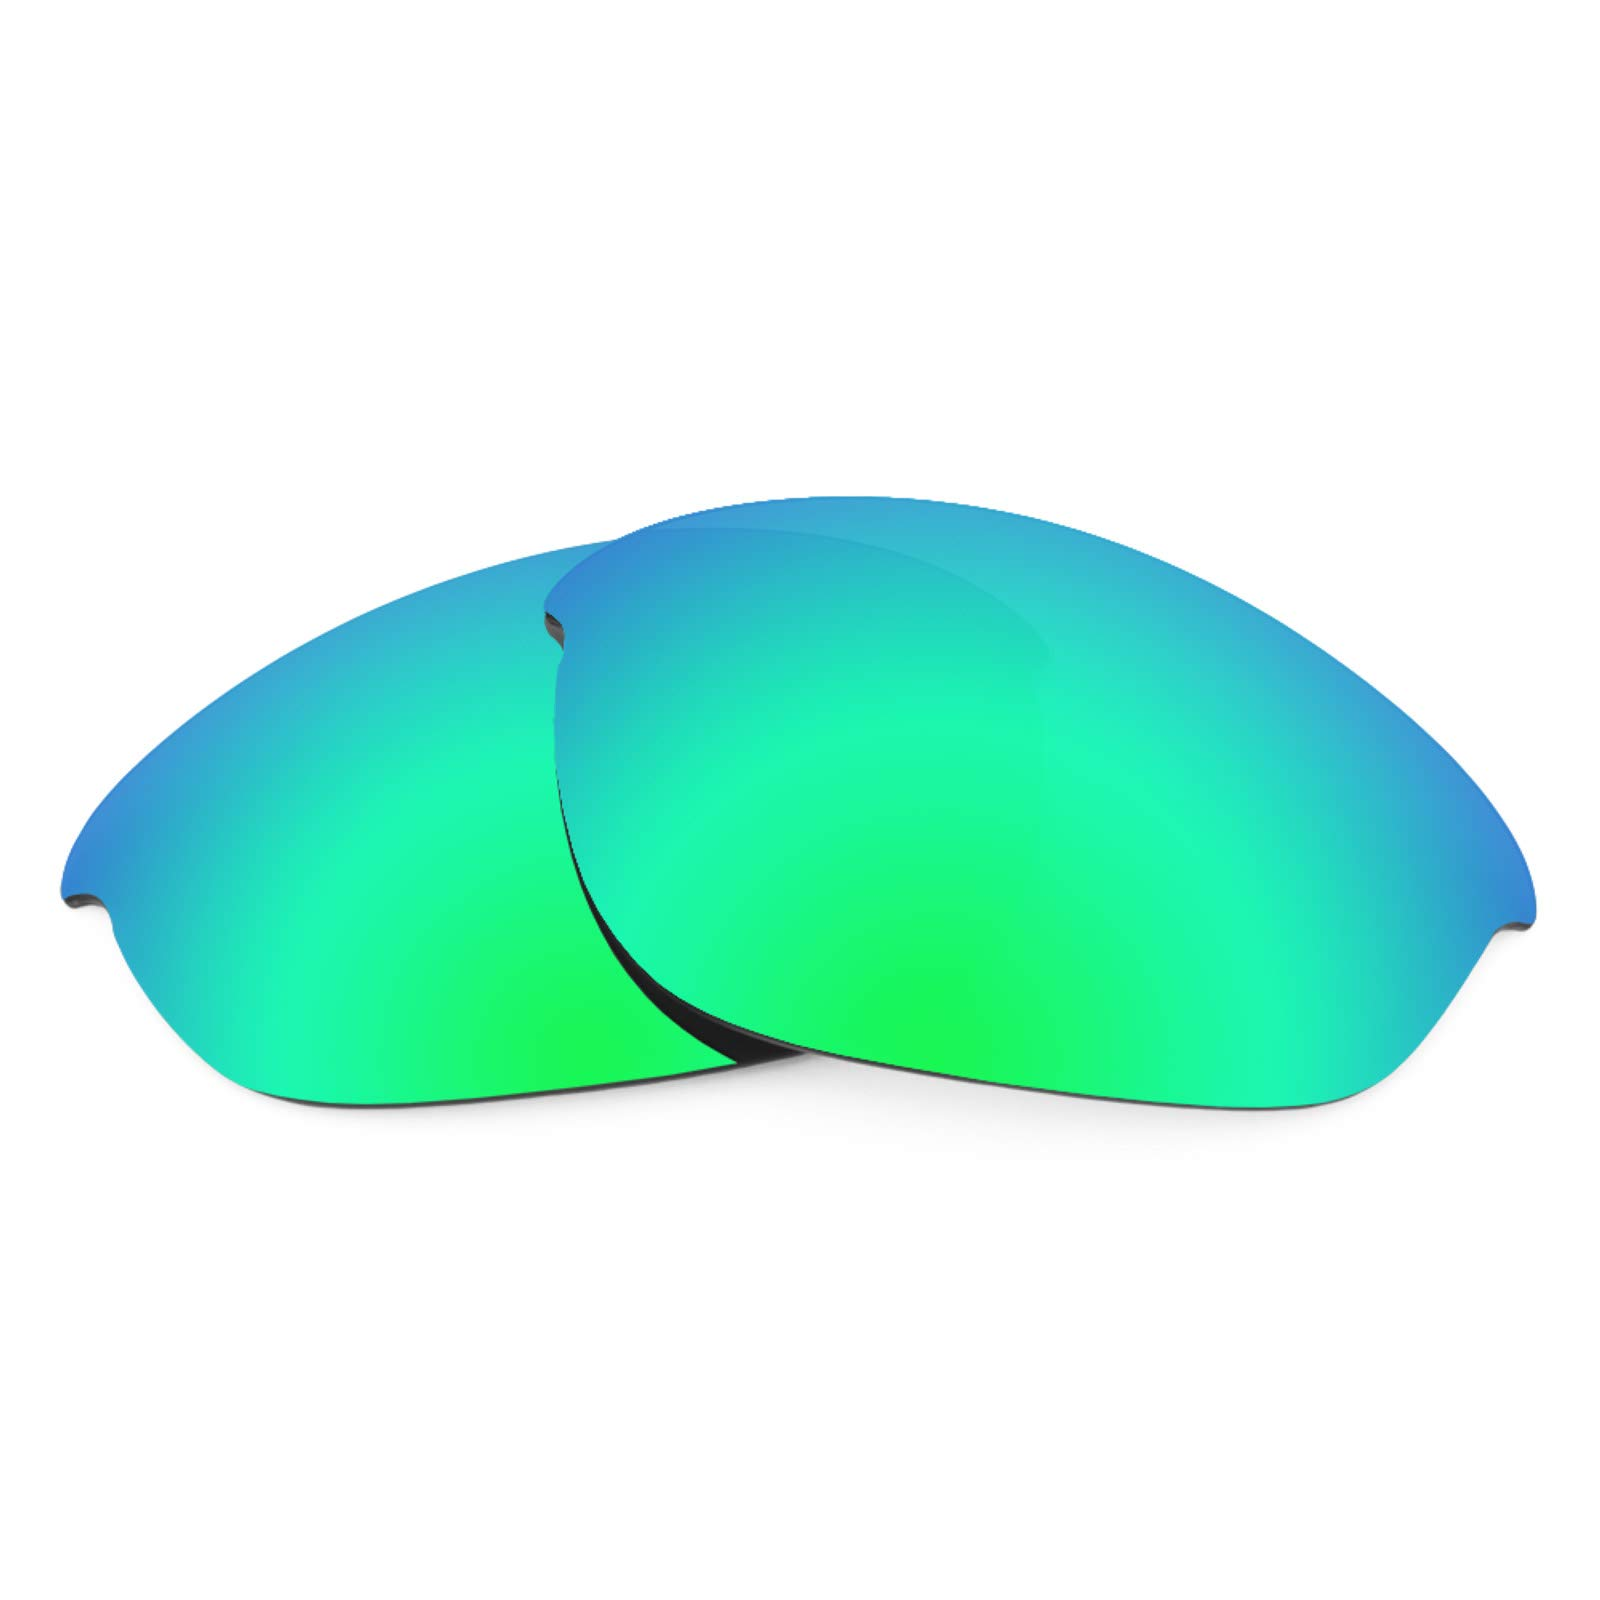 Revant Replacement Lenses for Oakley Half Jacket (Asian Fit), Polarized, Emerald Green MirrorShield